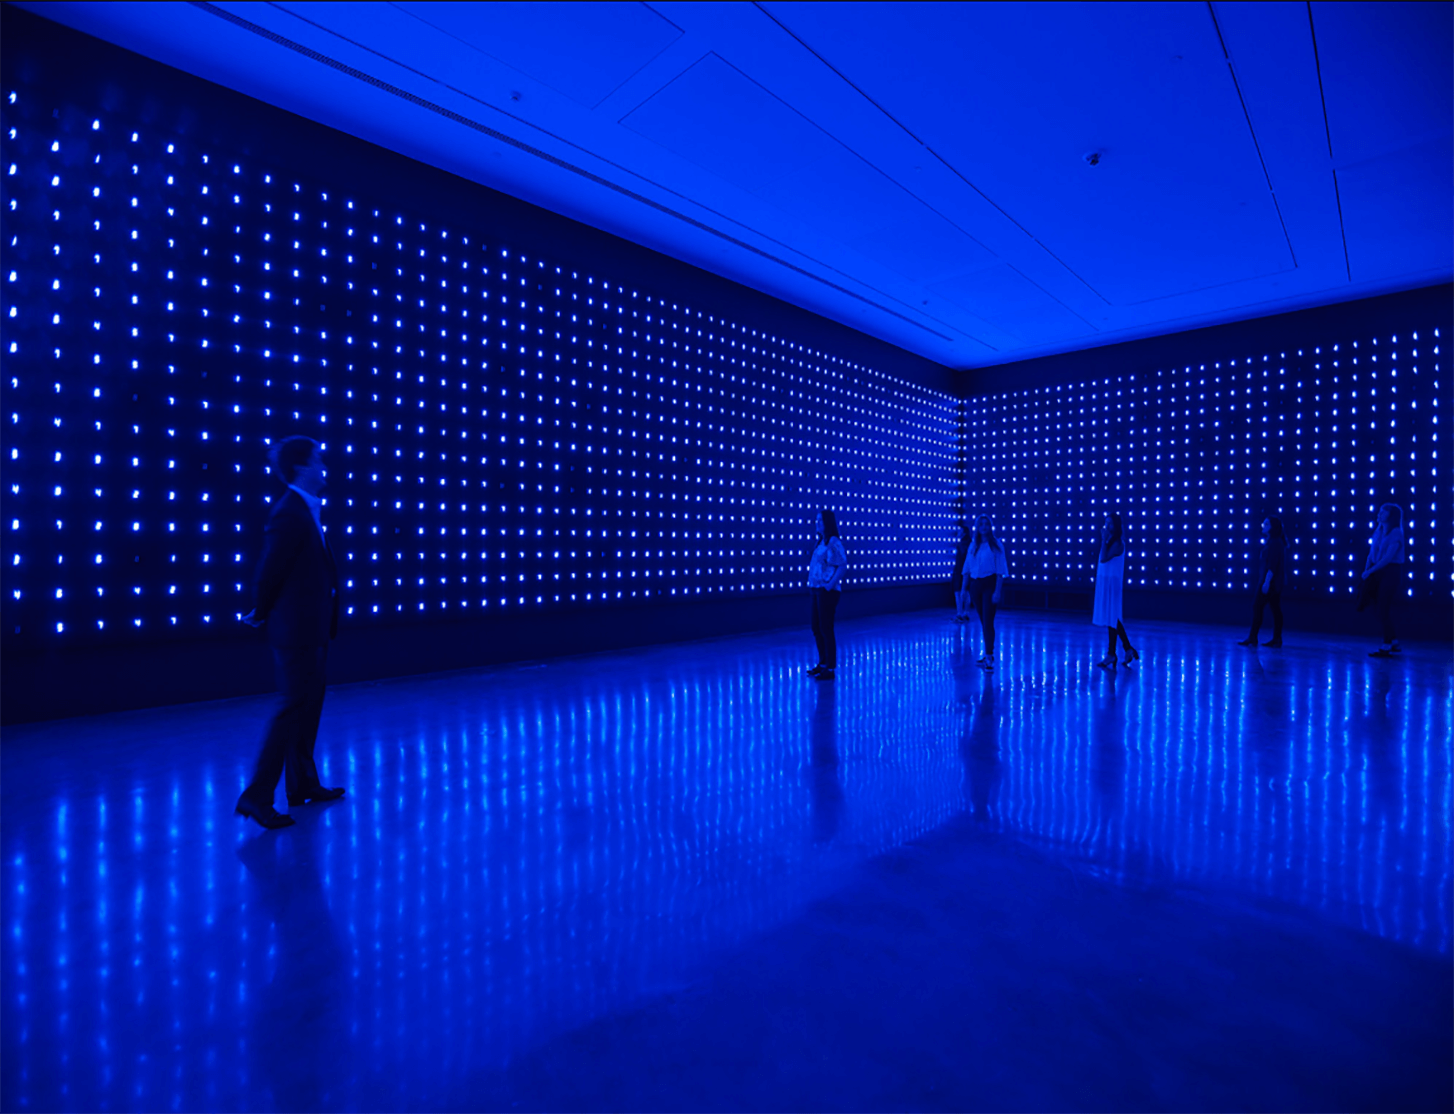 'Minimalism: Space. Light. Object.' opens this week in Singapore